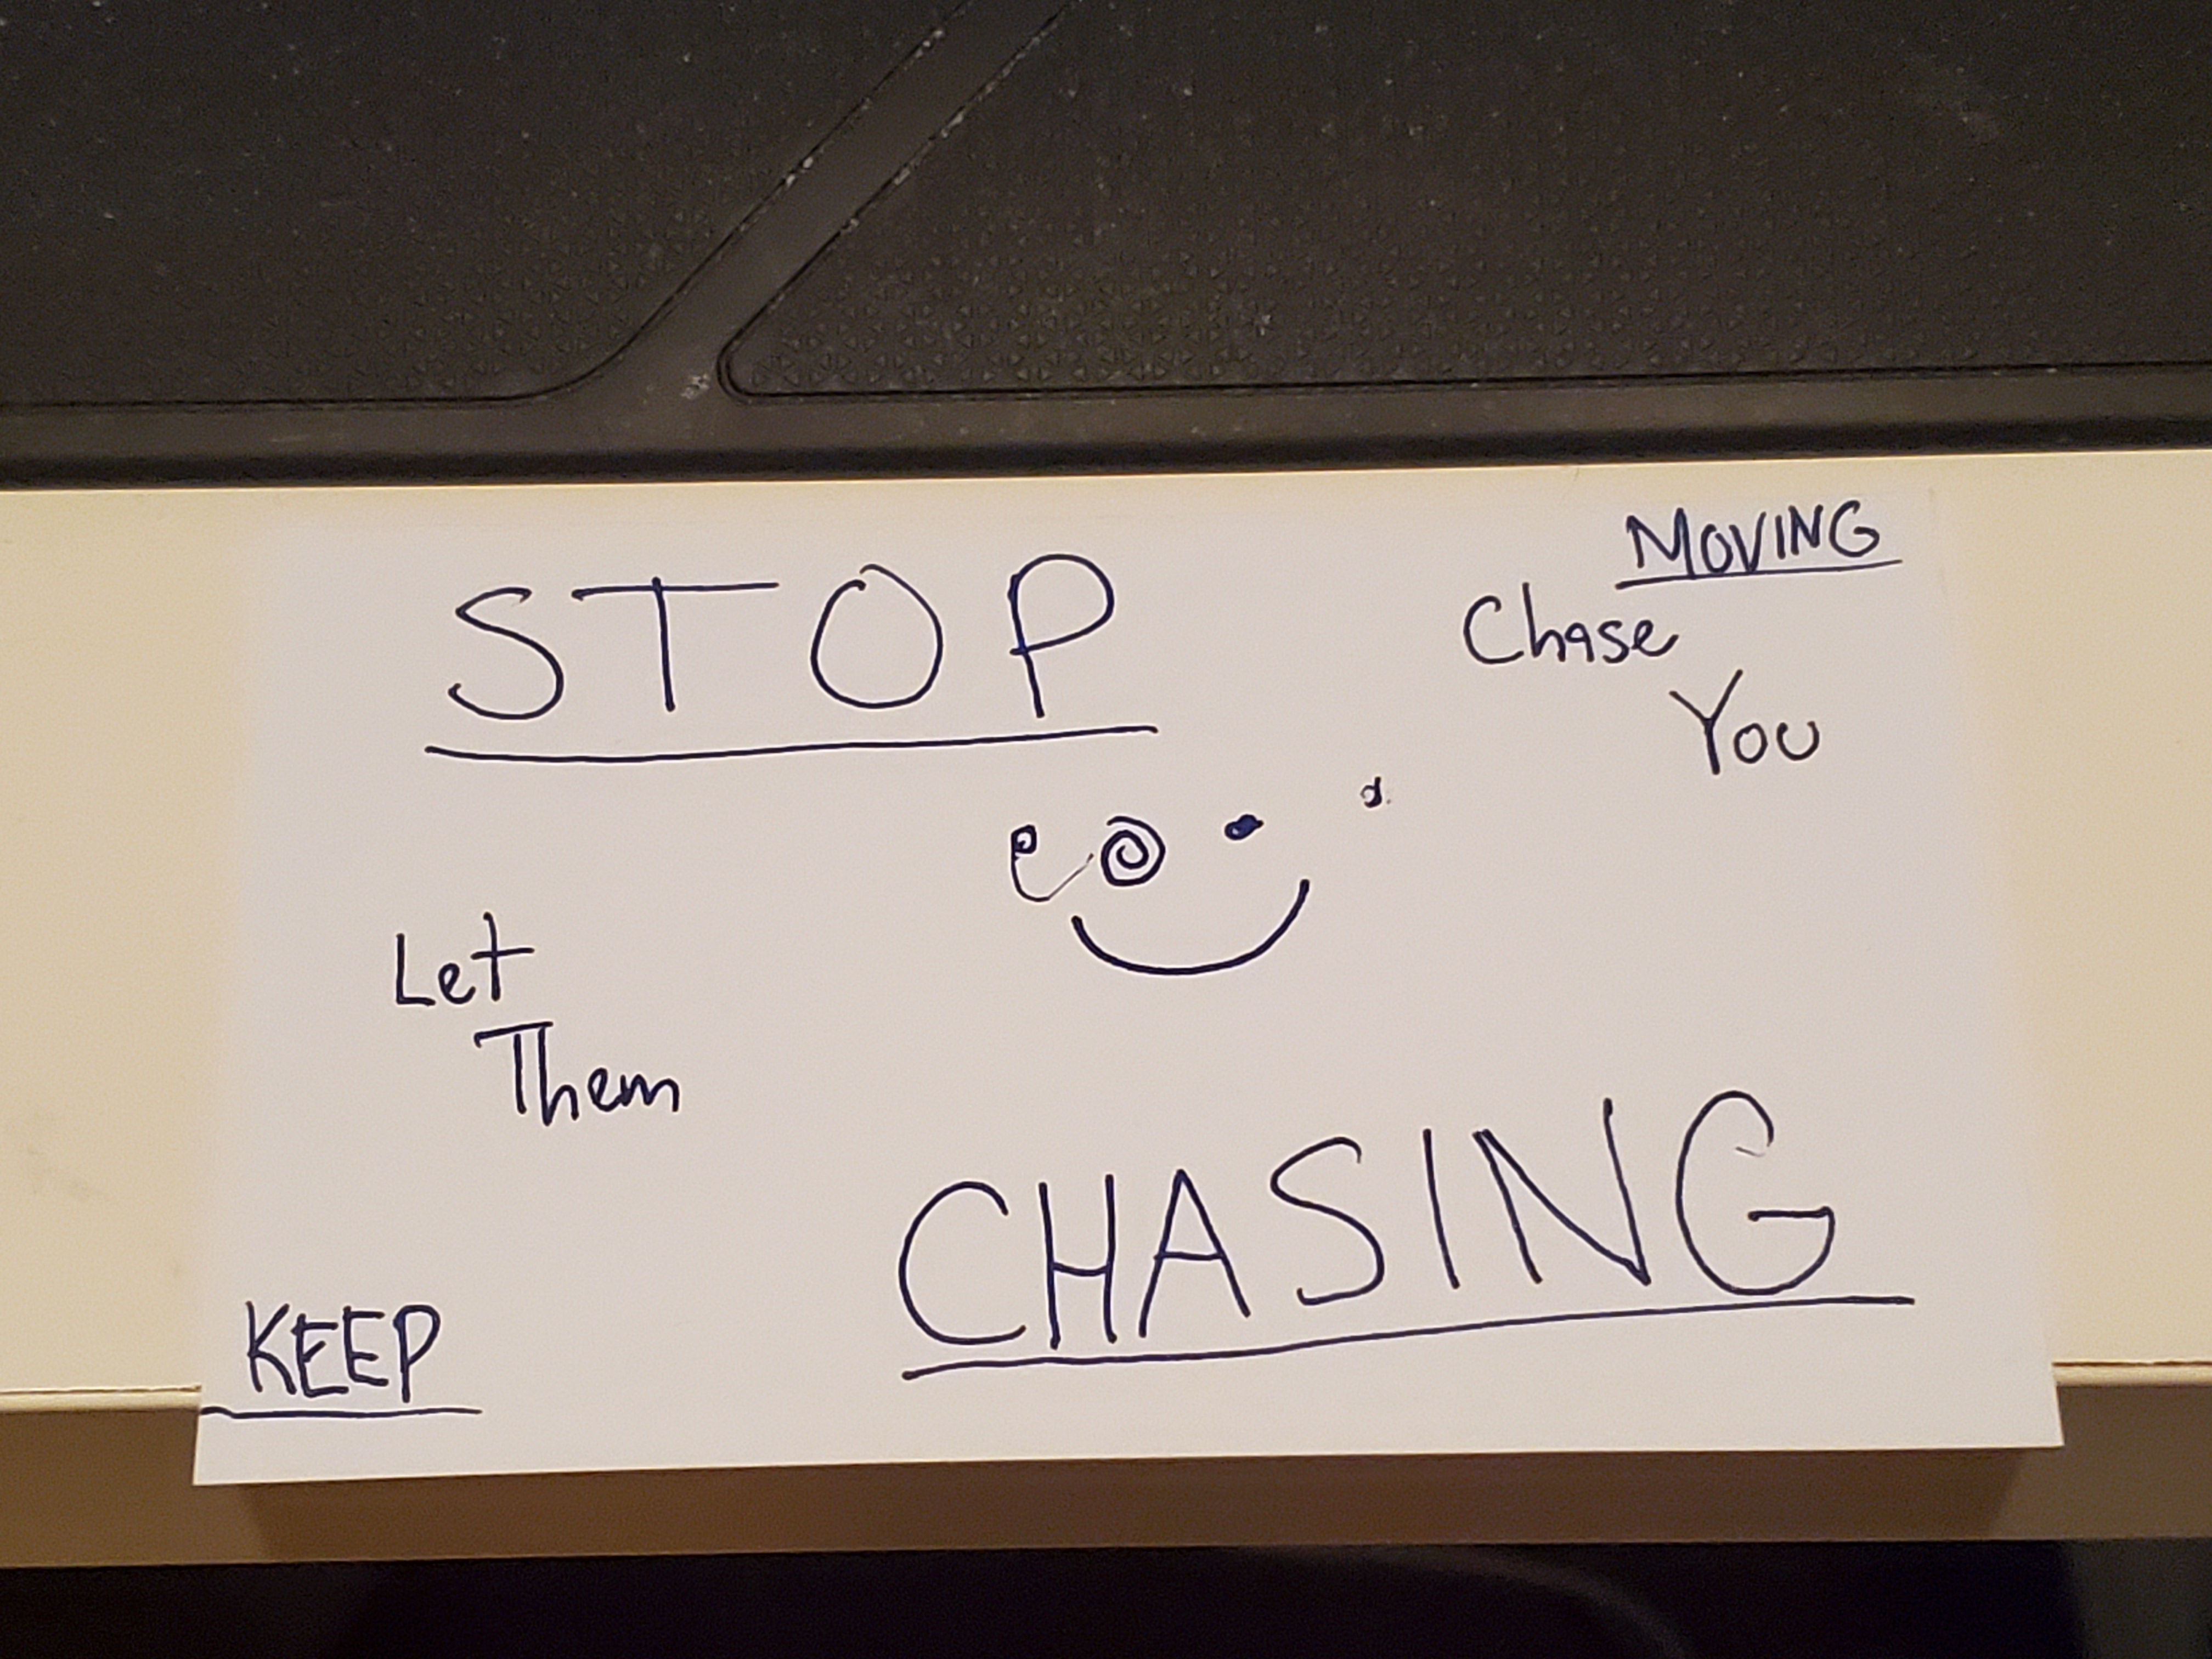 Let Them Chase You